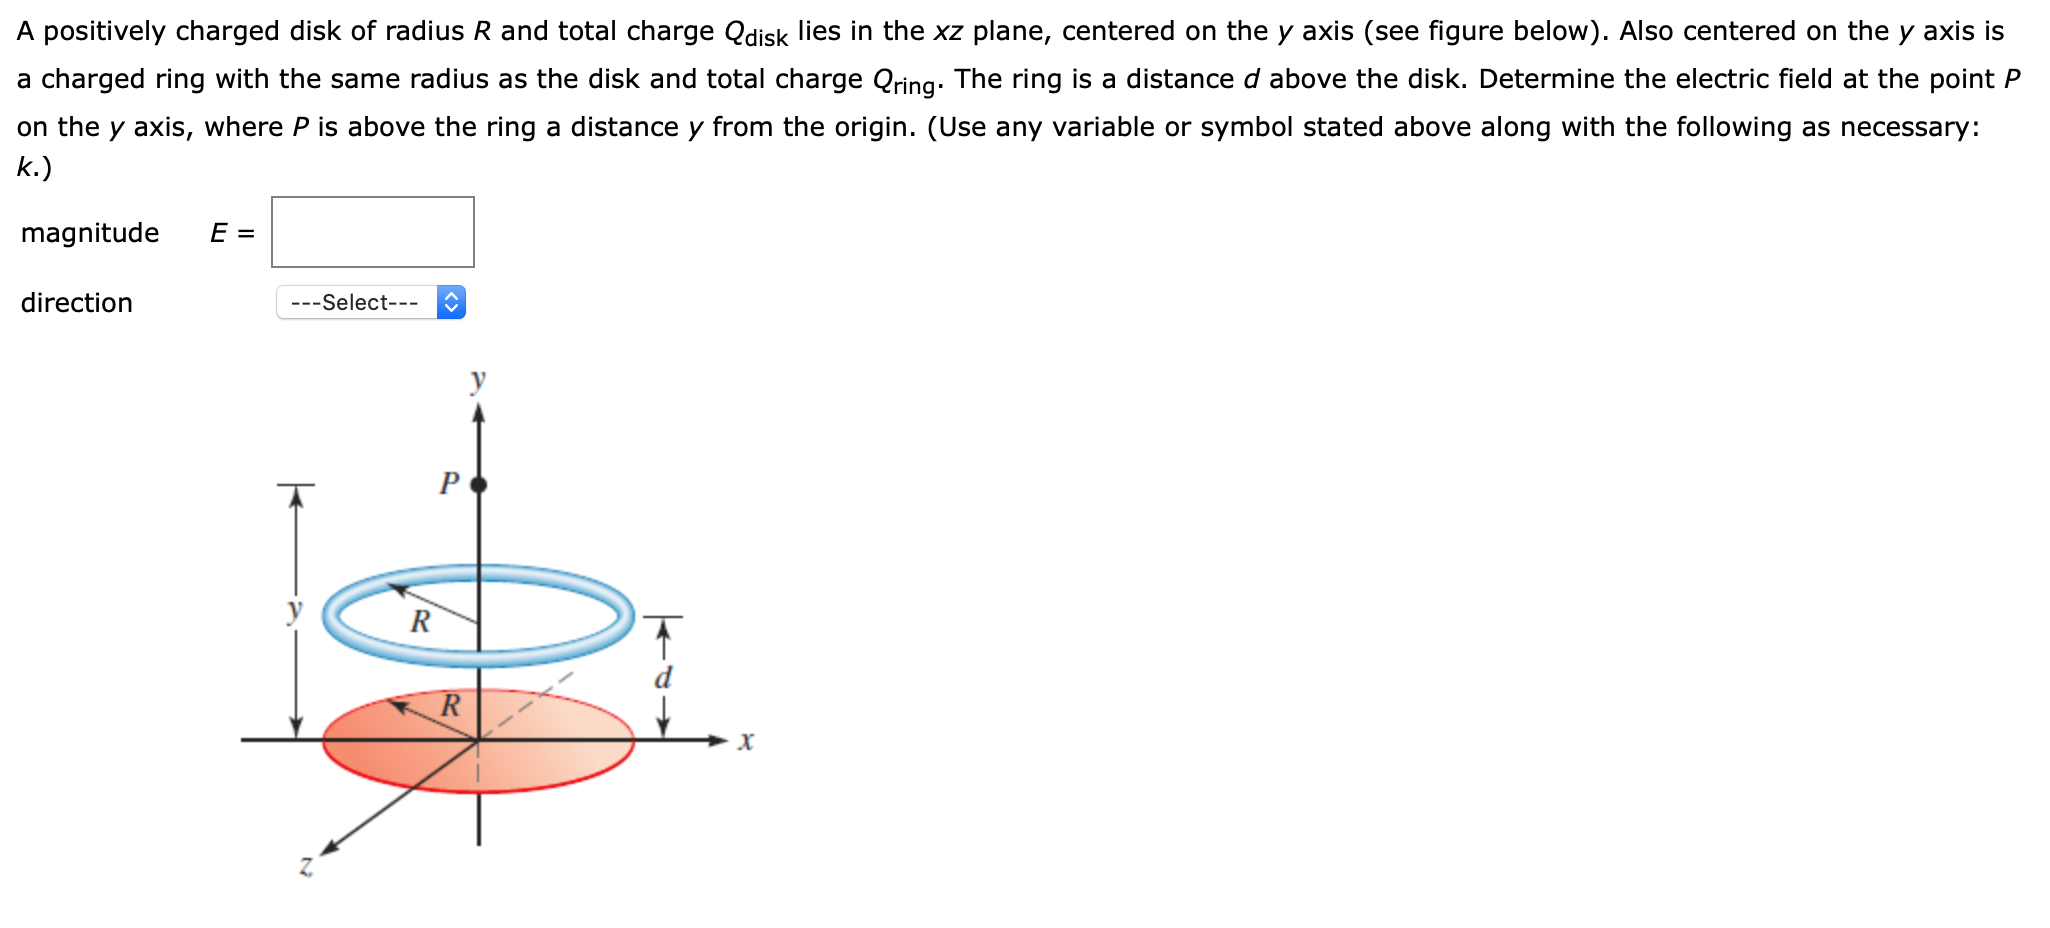 A positively charged disk of radius R and total charge Qdisk lies in the xz plane, centered on the y axis (see figure below).